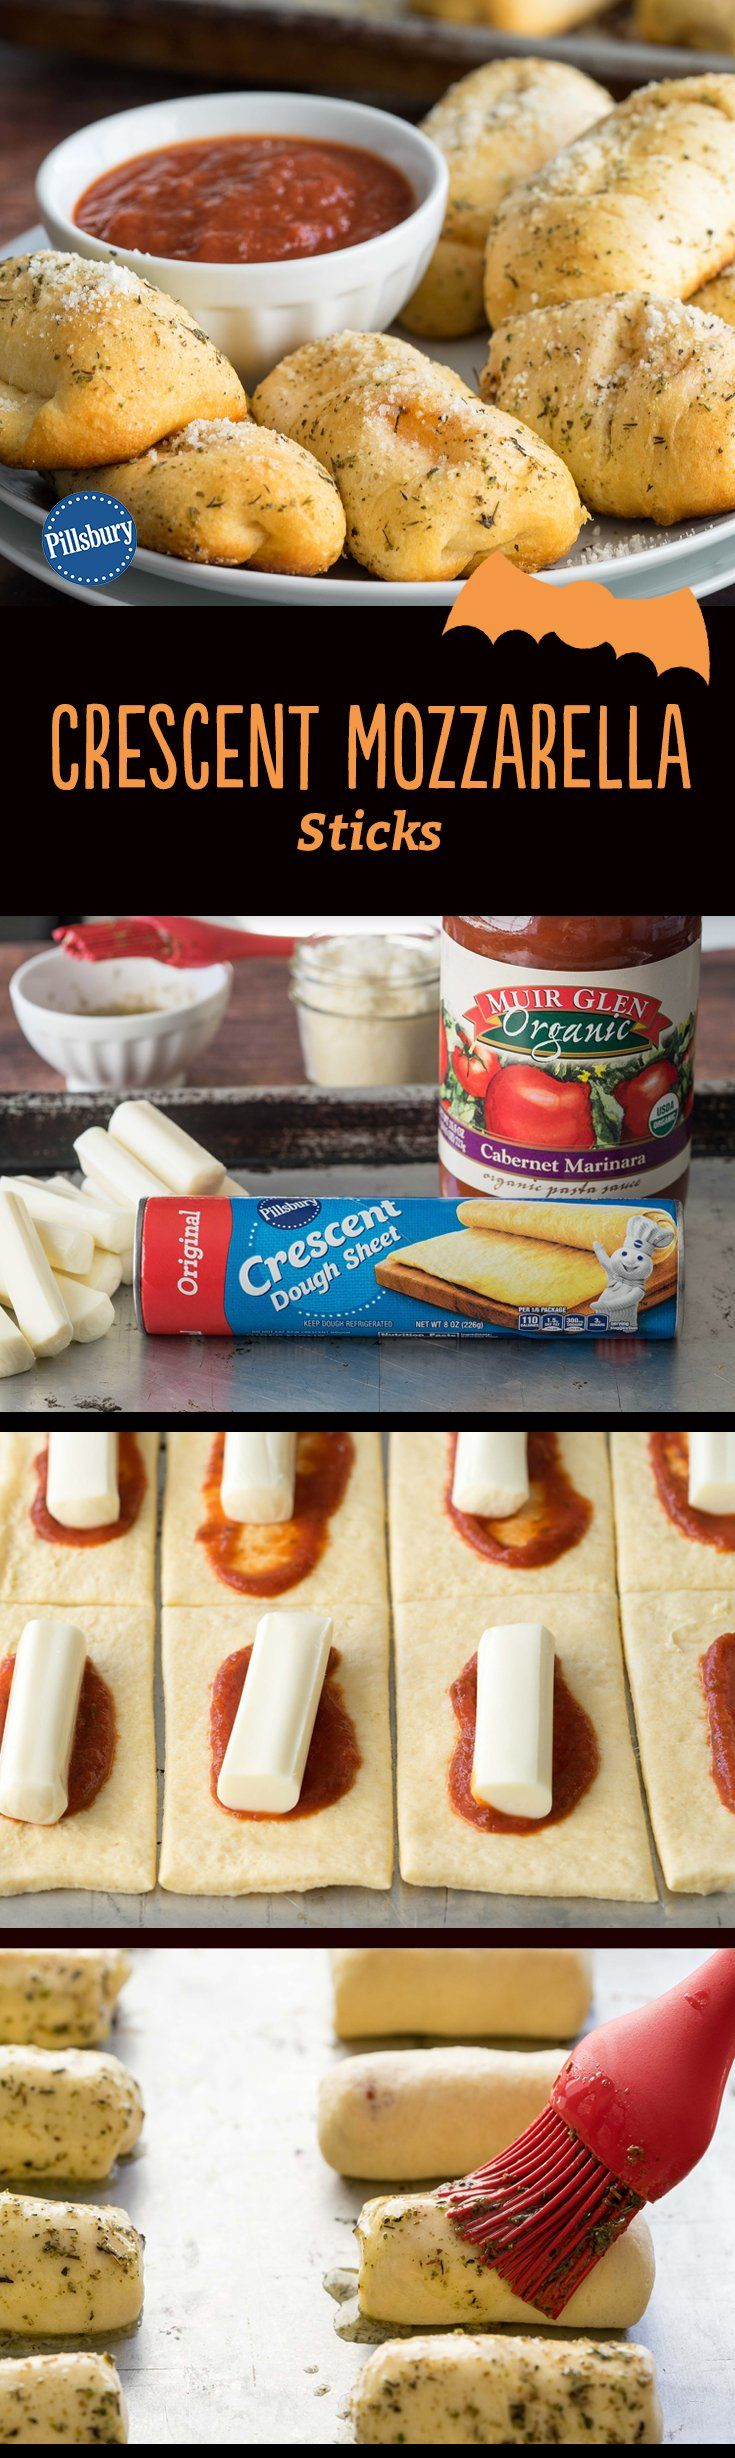 Hosting a trick-or-treat party? These crazy-good Crescent Mozzarella Sticks are easy-to-make and kid-friendly, too. Serve with a side of marinara sauce for dipping, or even add a few pepperoni slices for an extra flavorful touch. The best part? This easy dinner is ready in just 30 minutes.